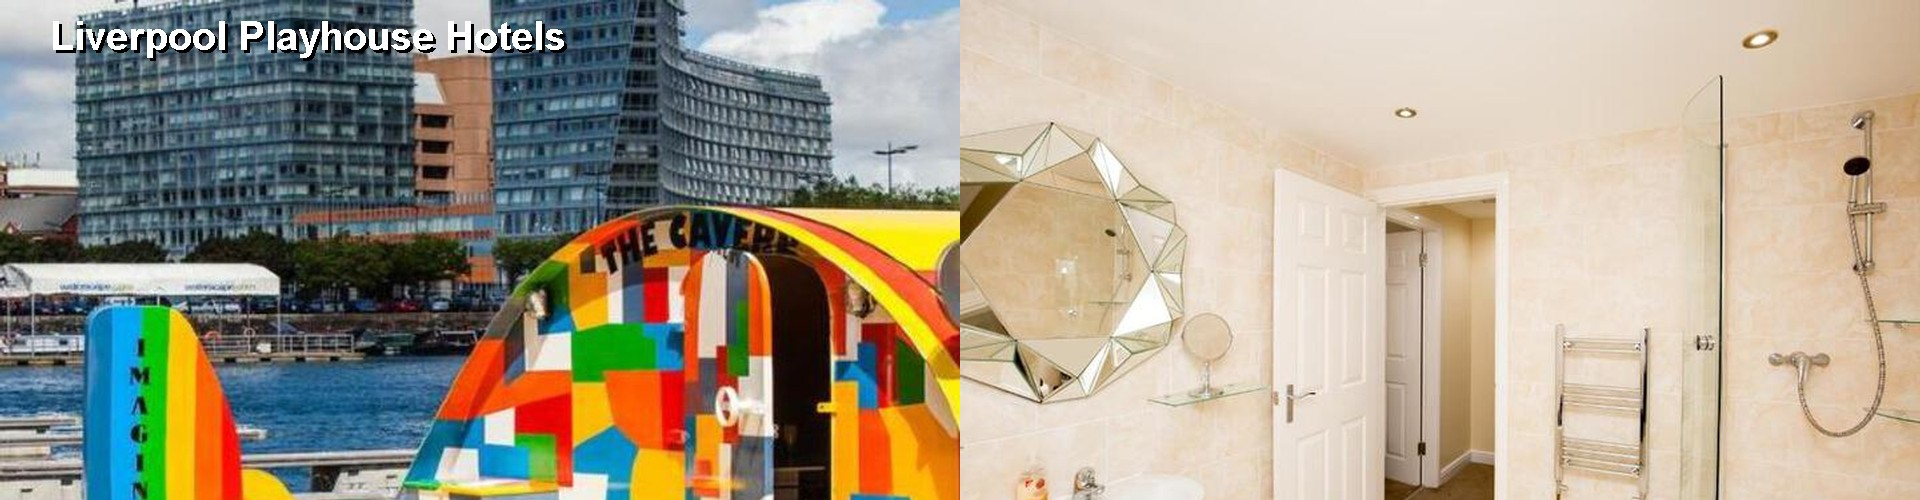 5 Best Hotels near Liverpool Playhouse